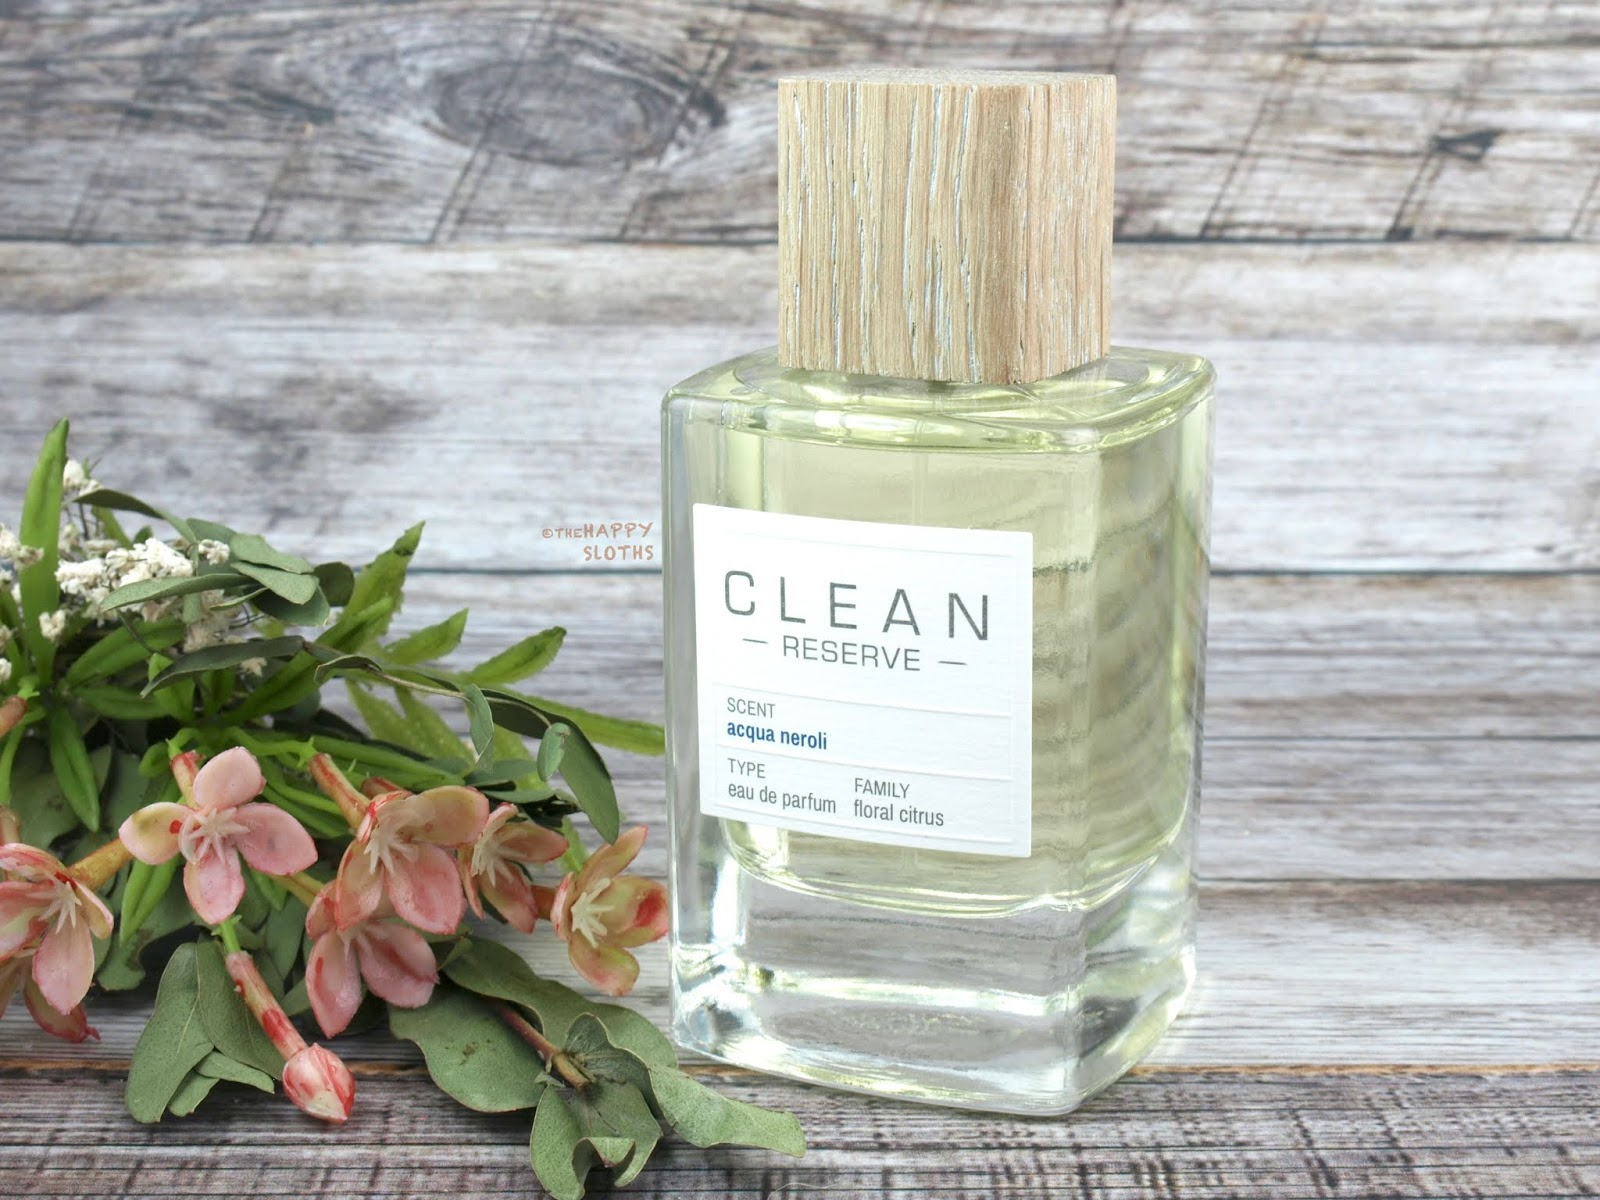 Clean Reserve | Acqua Neroli Eau de Parfum: Review